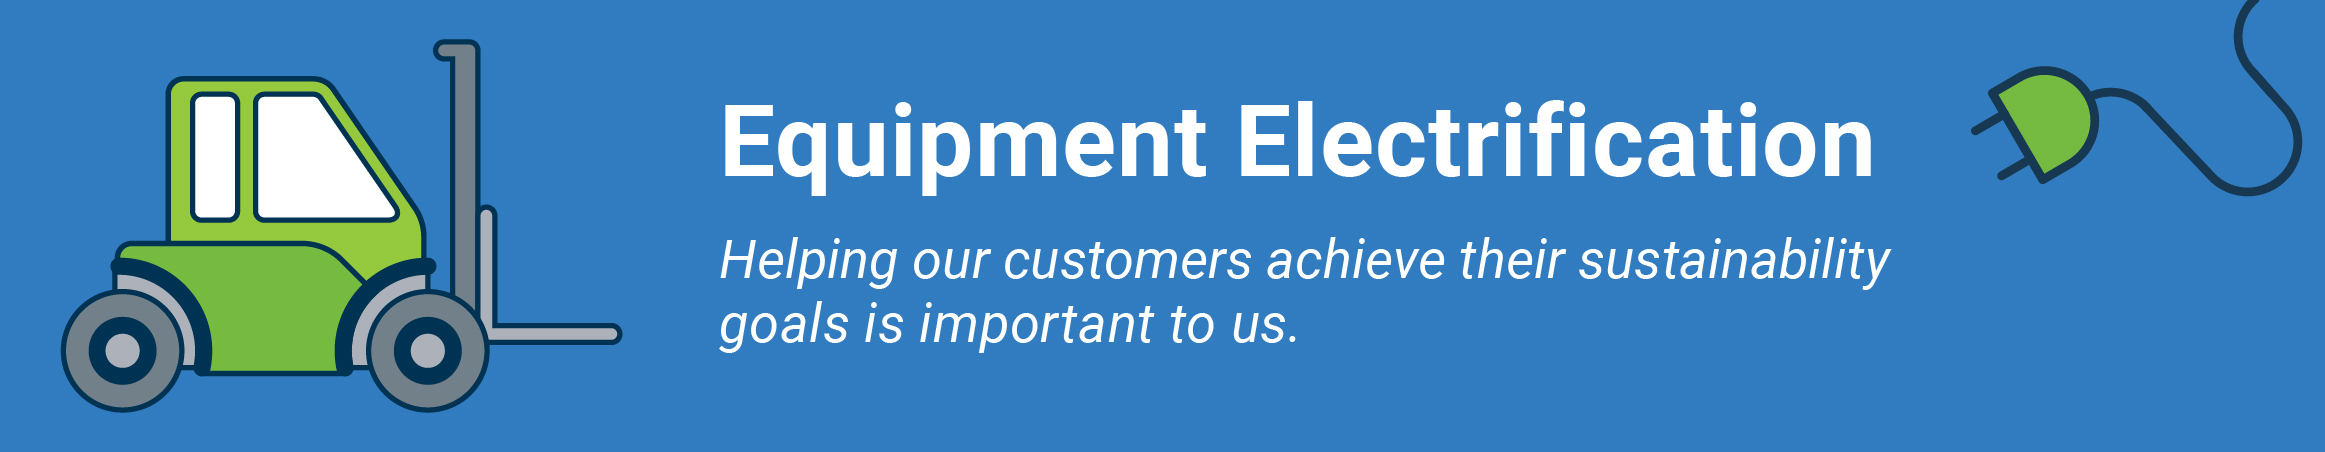 Business Equipment Electrification - helping our customers achieve their sustainability goals is important to us